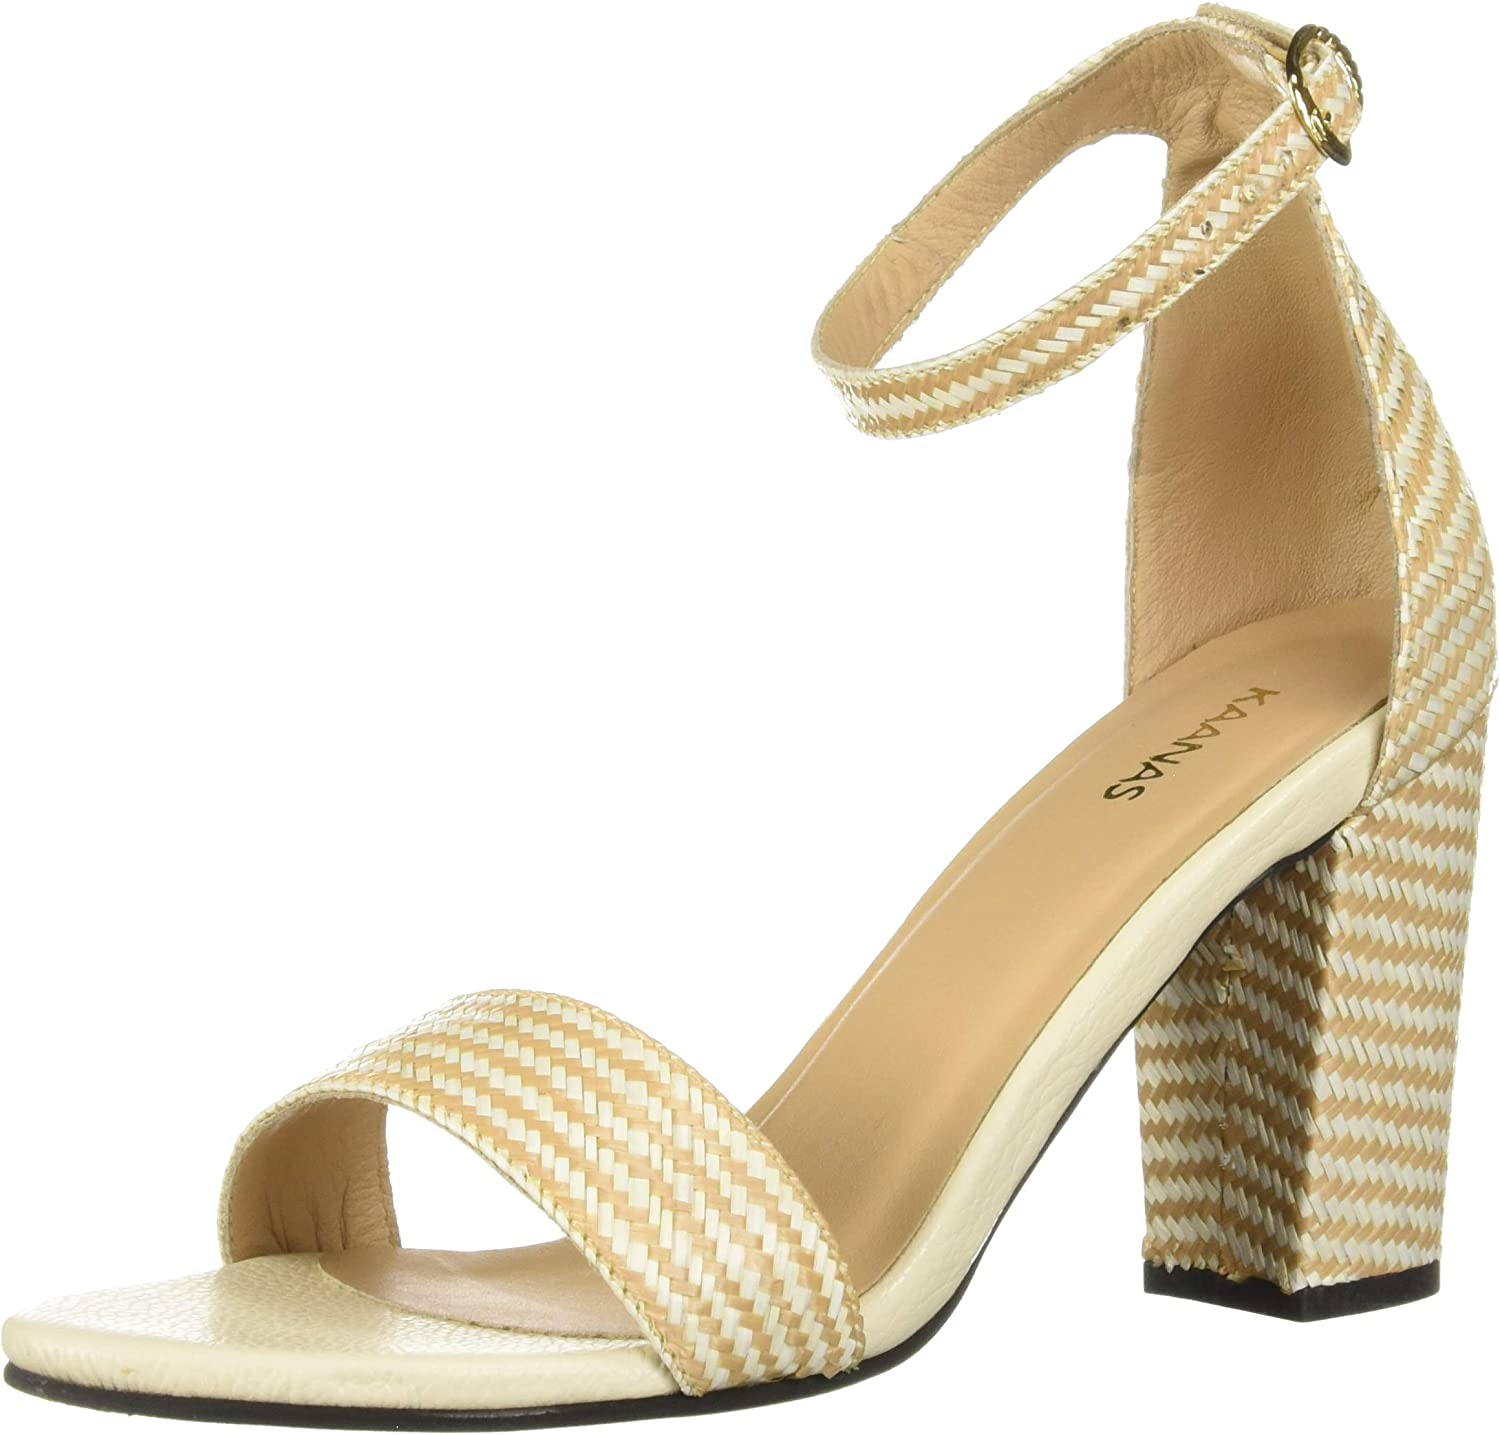 KAANAS Womens Glasgow Straw Open Tow Heeled Ankle Strap Sandal shoes Flat Sandal